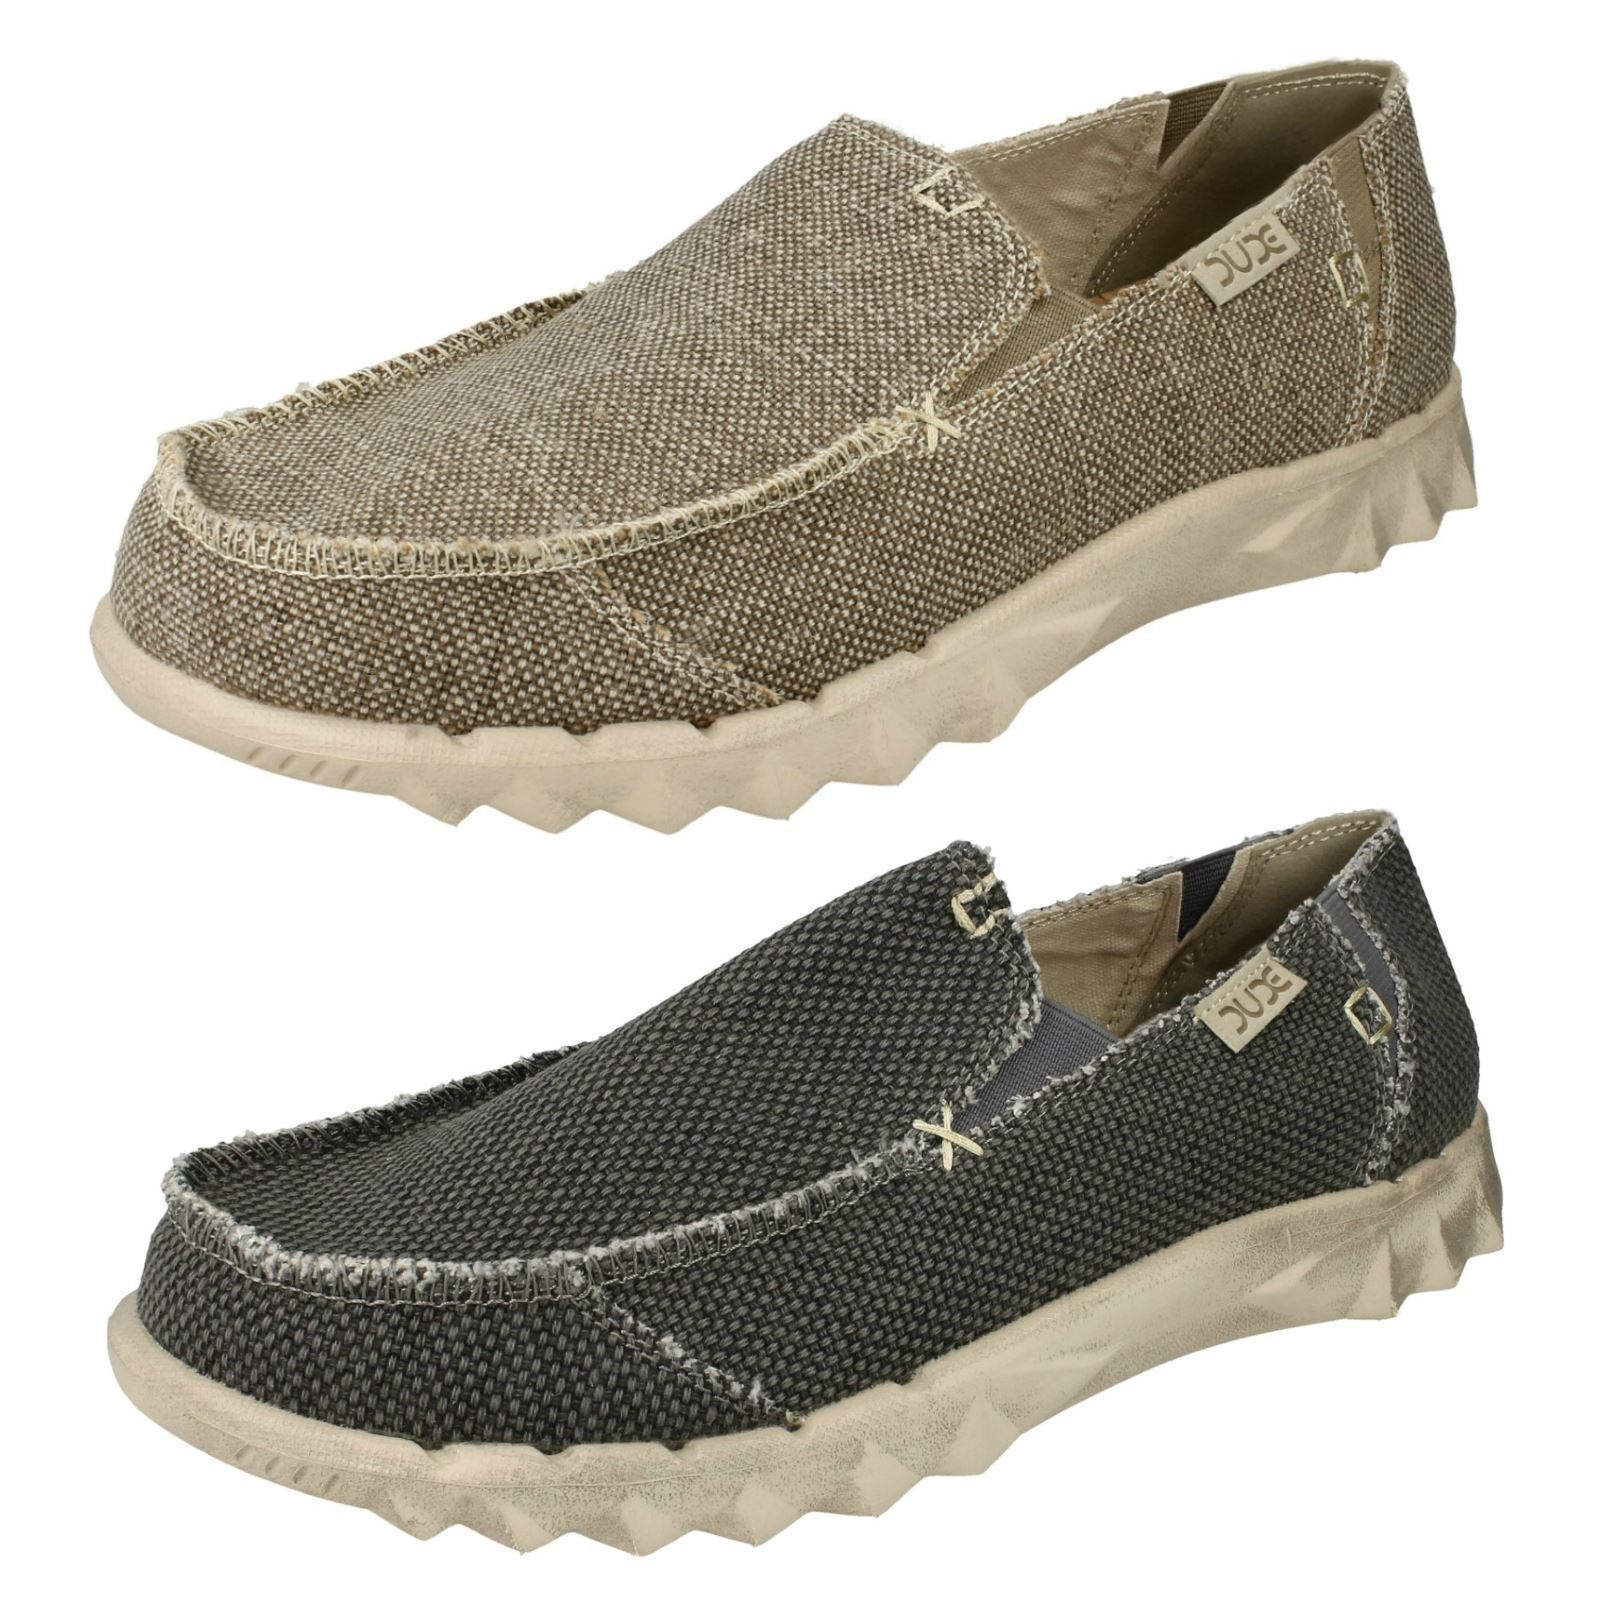 Herren Hey Dude Casual Canvas Schuhes 'Farty Braided'